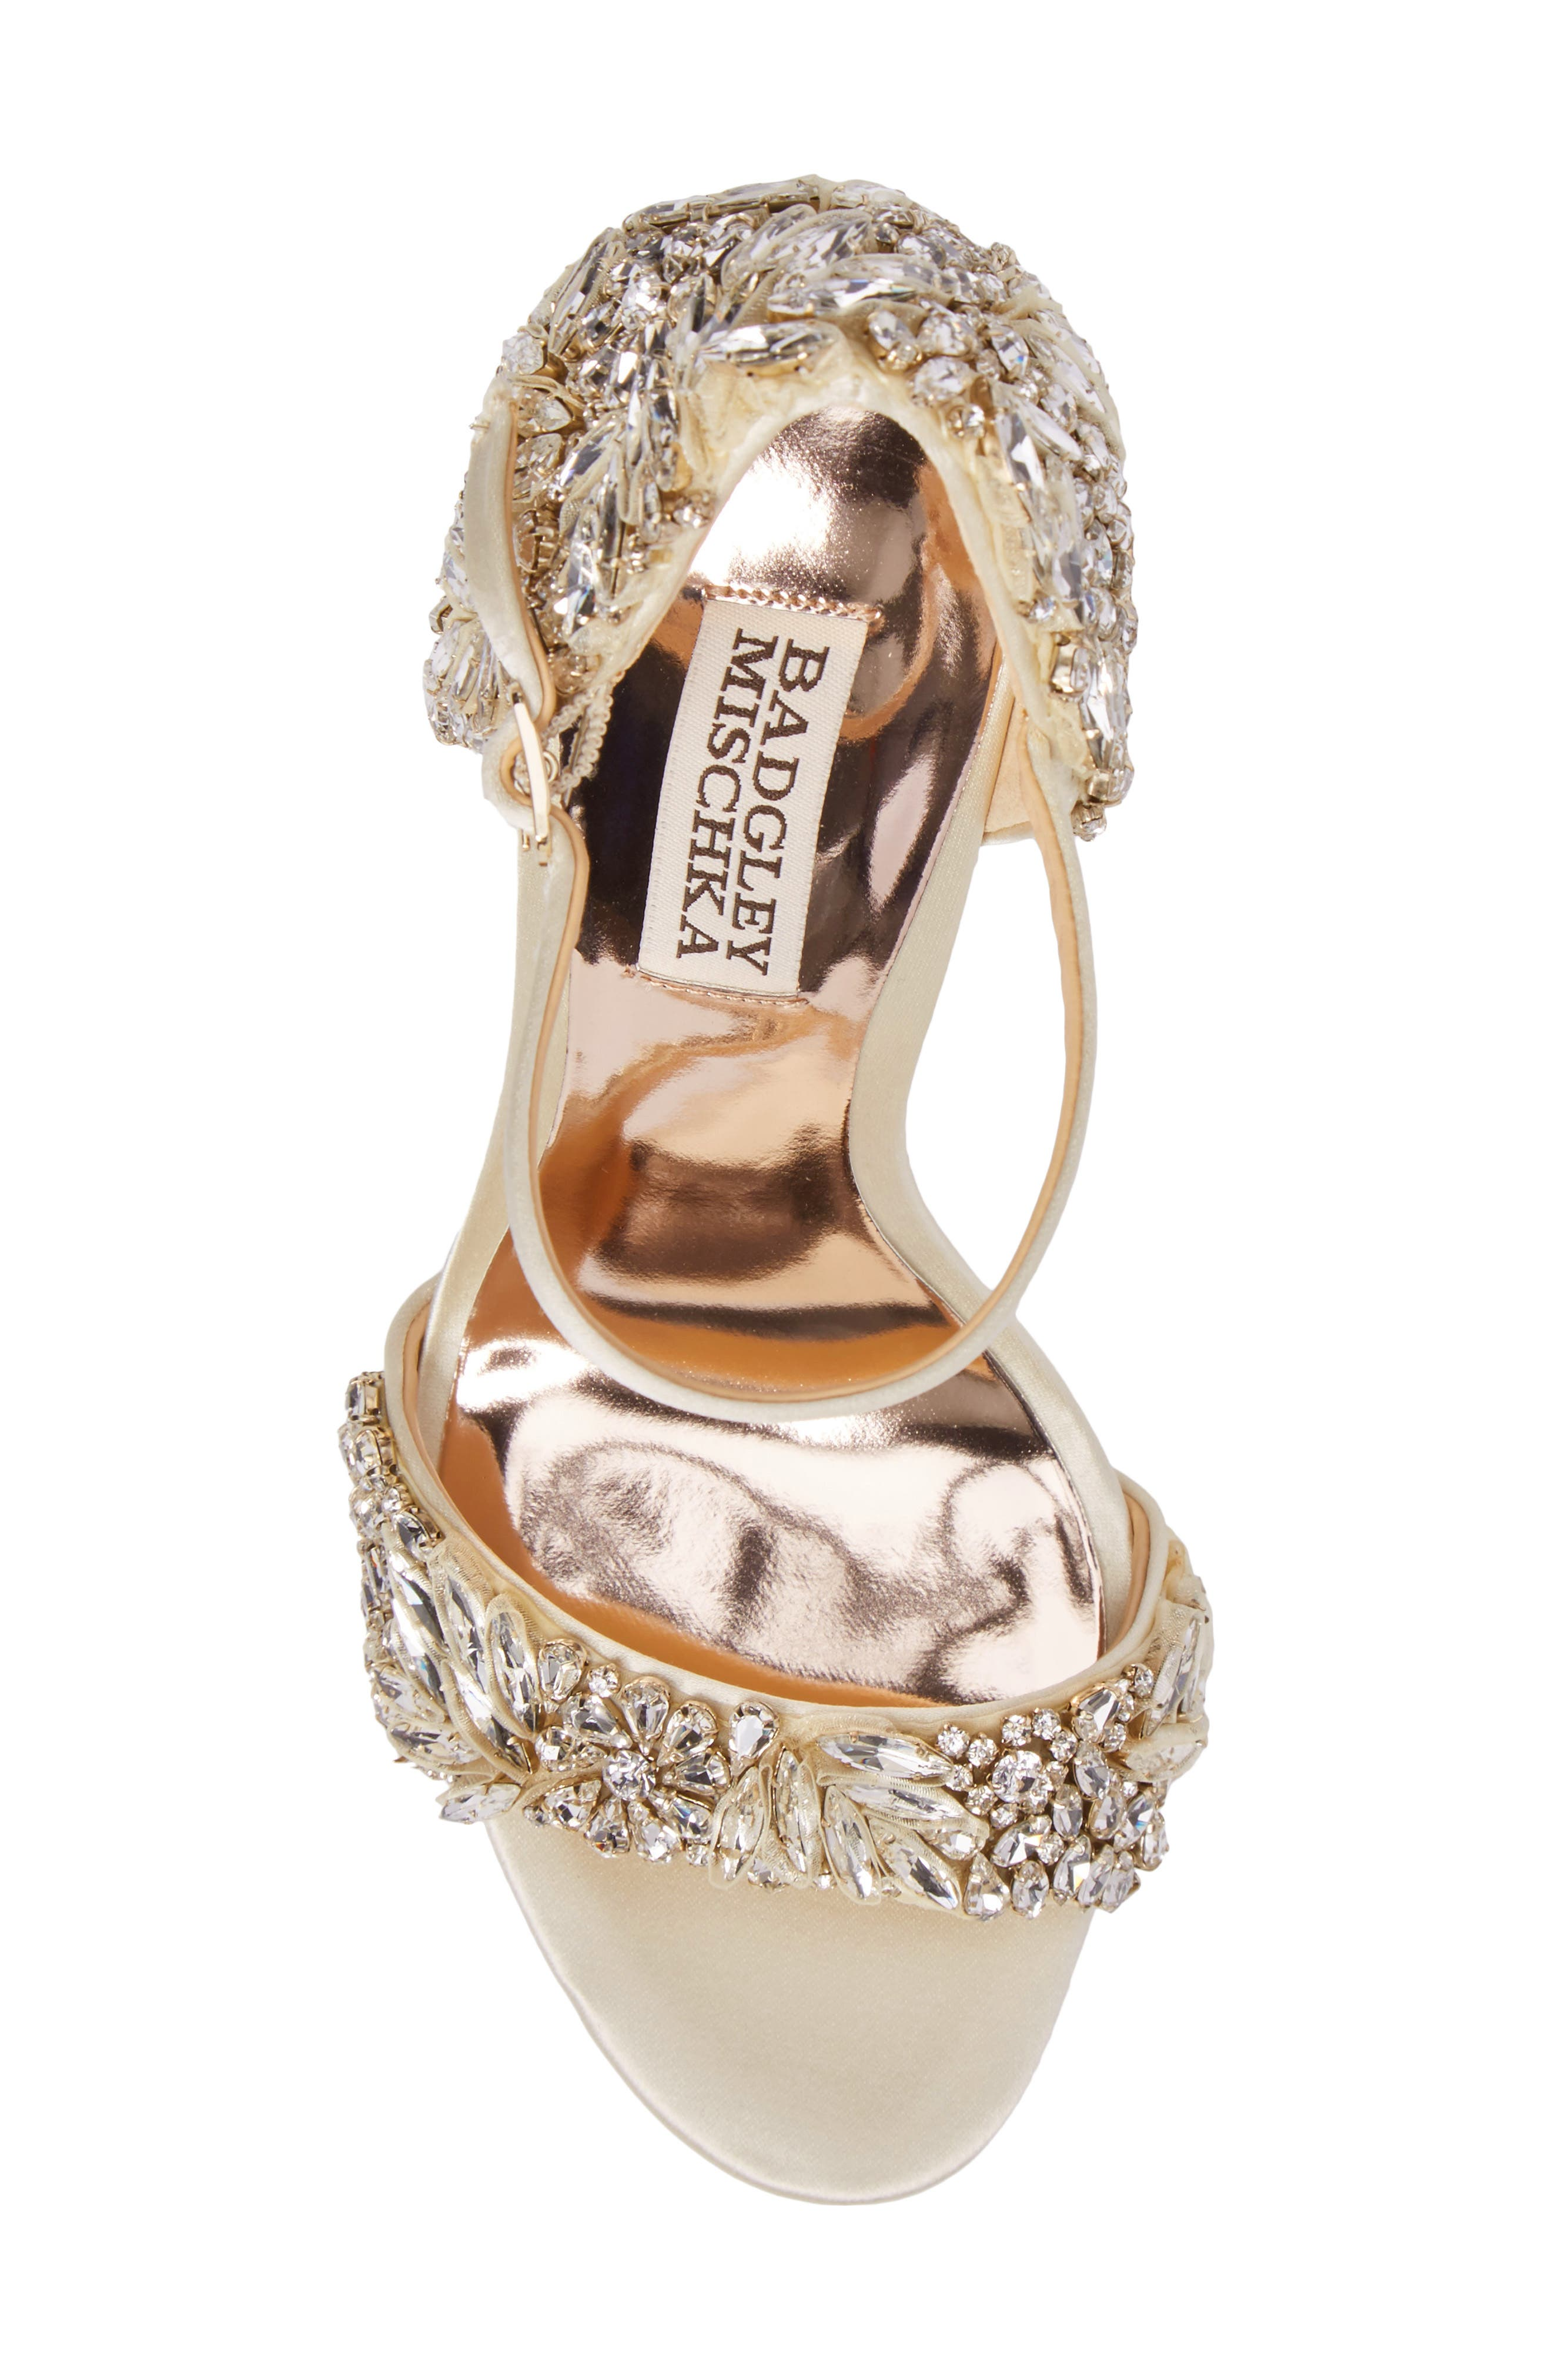 BADGLEY MISCHKA COLLECTION, Badgley Mischka Tampa Ankle Strap Sandal, Alternate thumbnail 5, color, IVORY SATIN